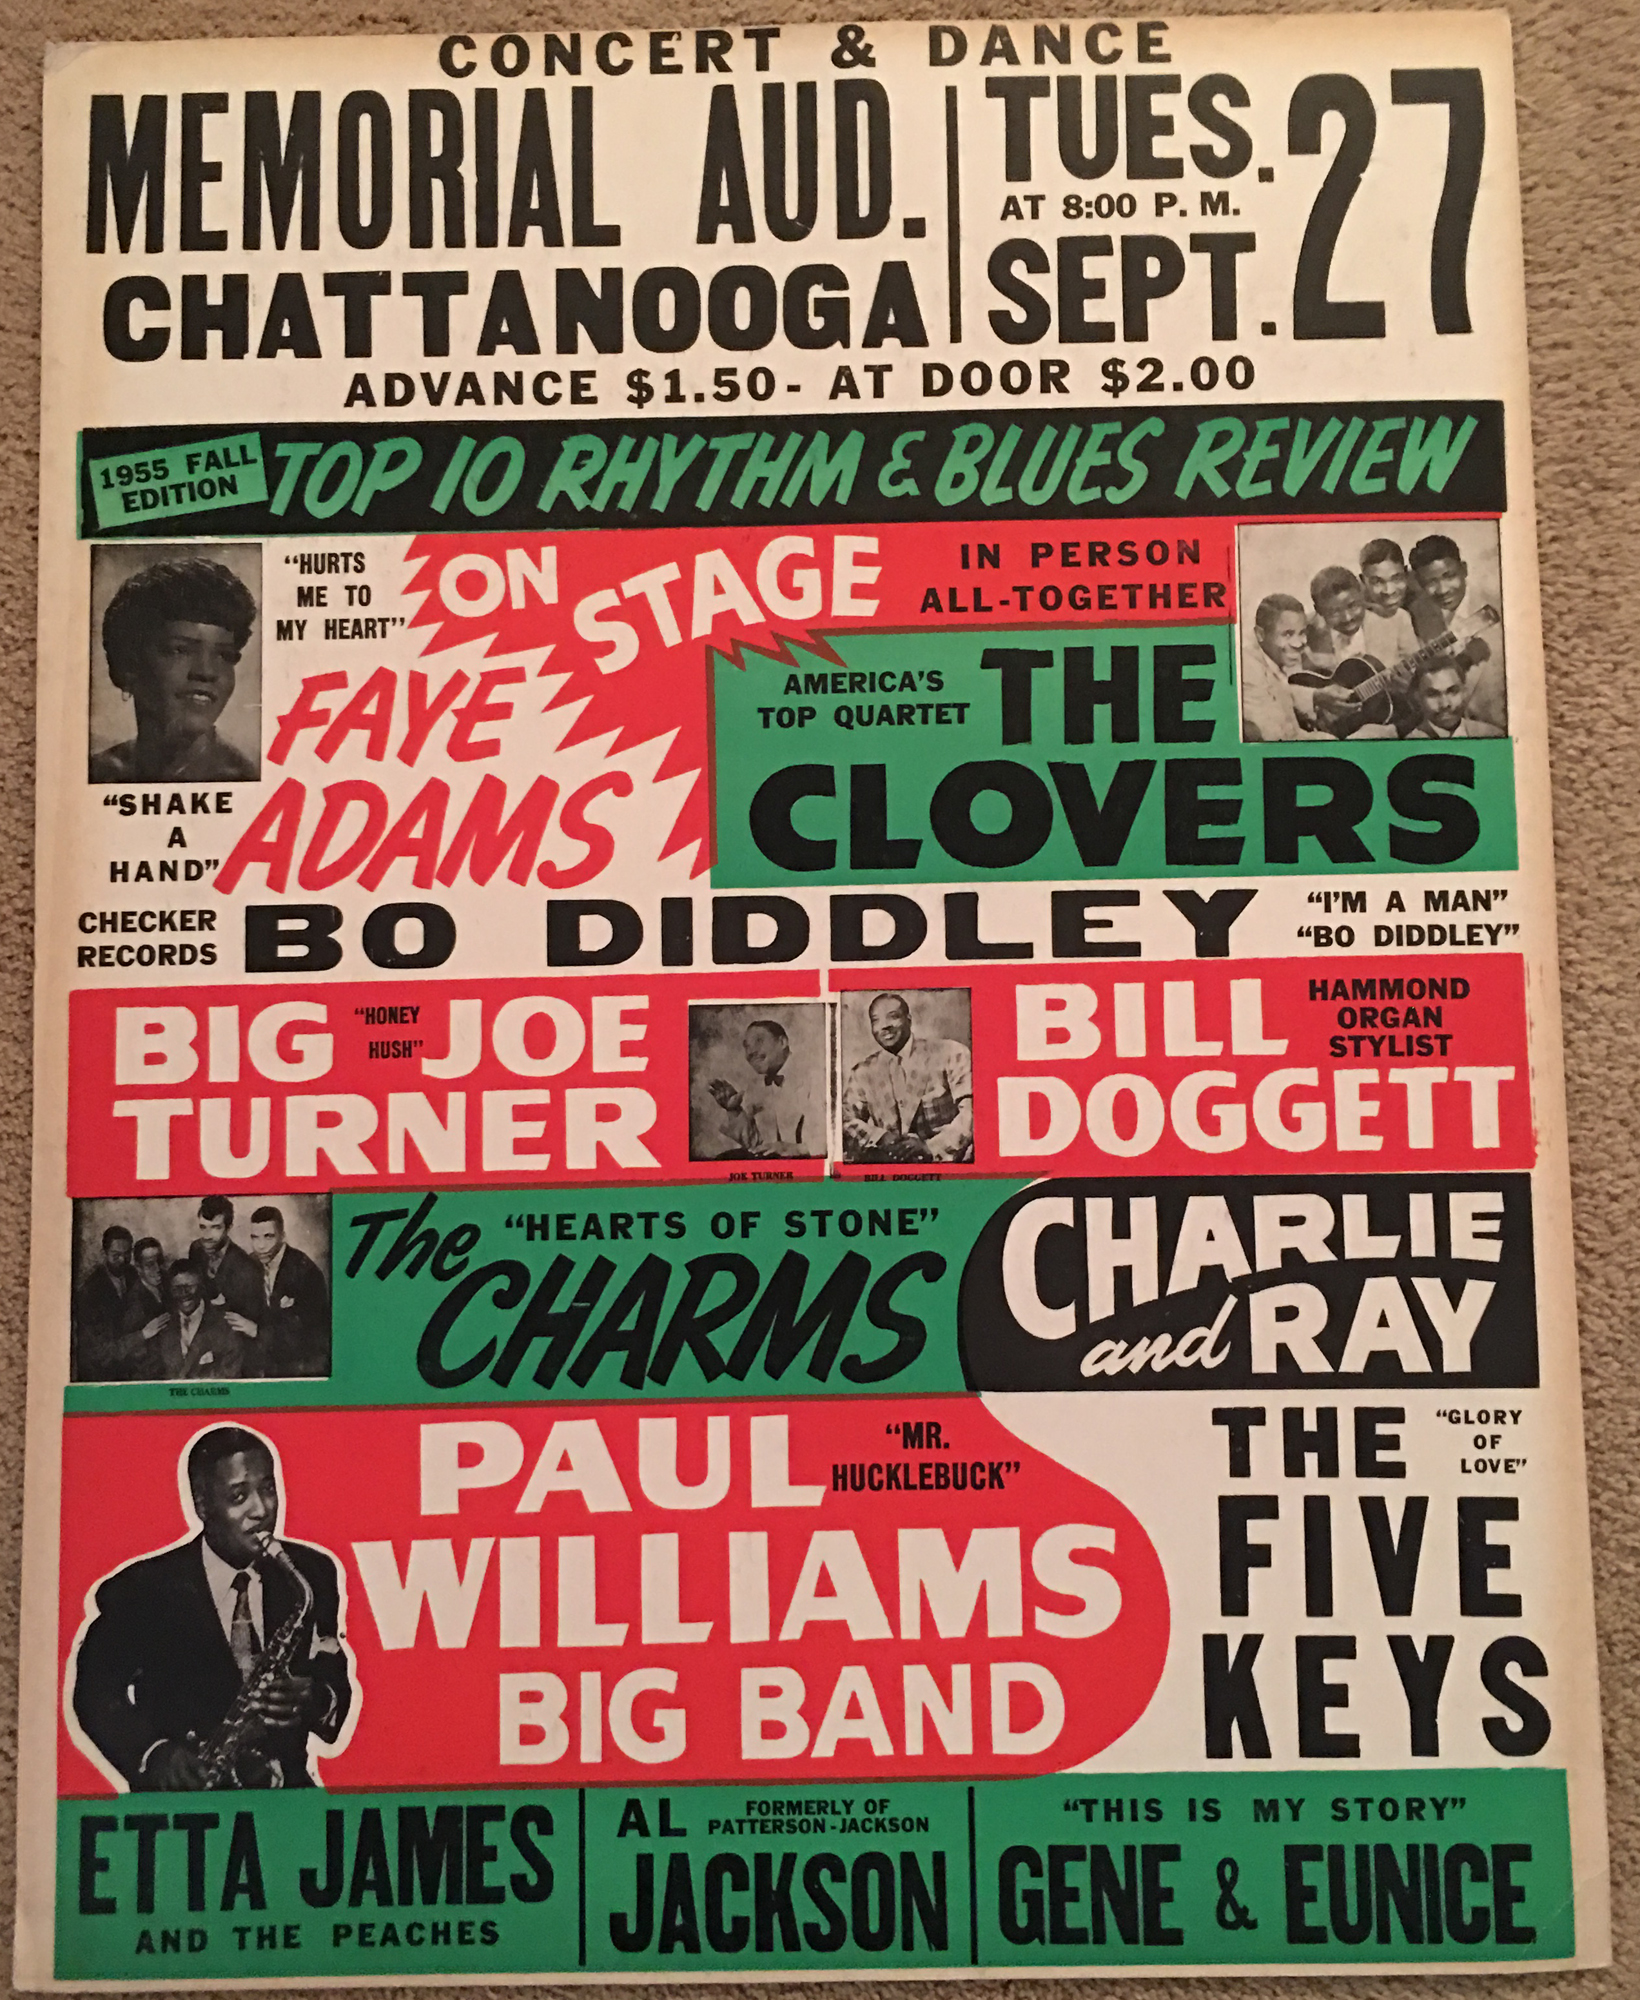 Image for Bo Diddley / Etta James / Big Joe Turner R&B Concert Poster, Chattanooga, 1955